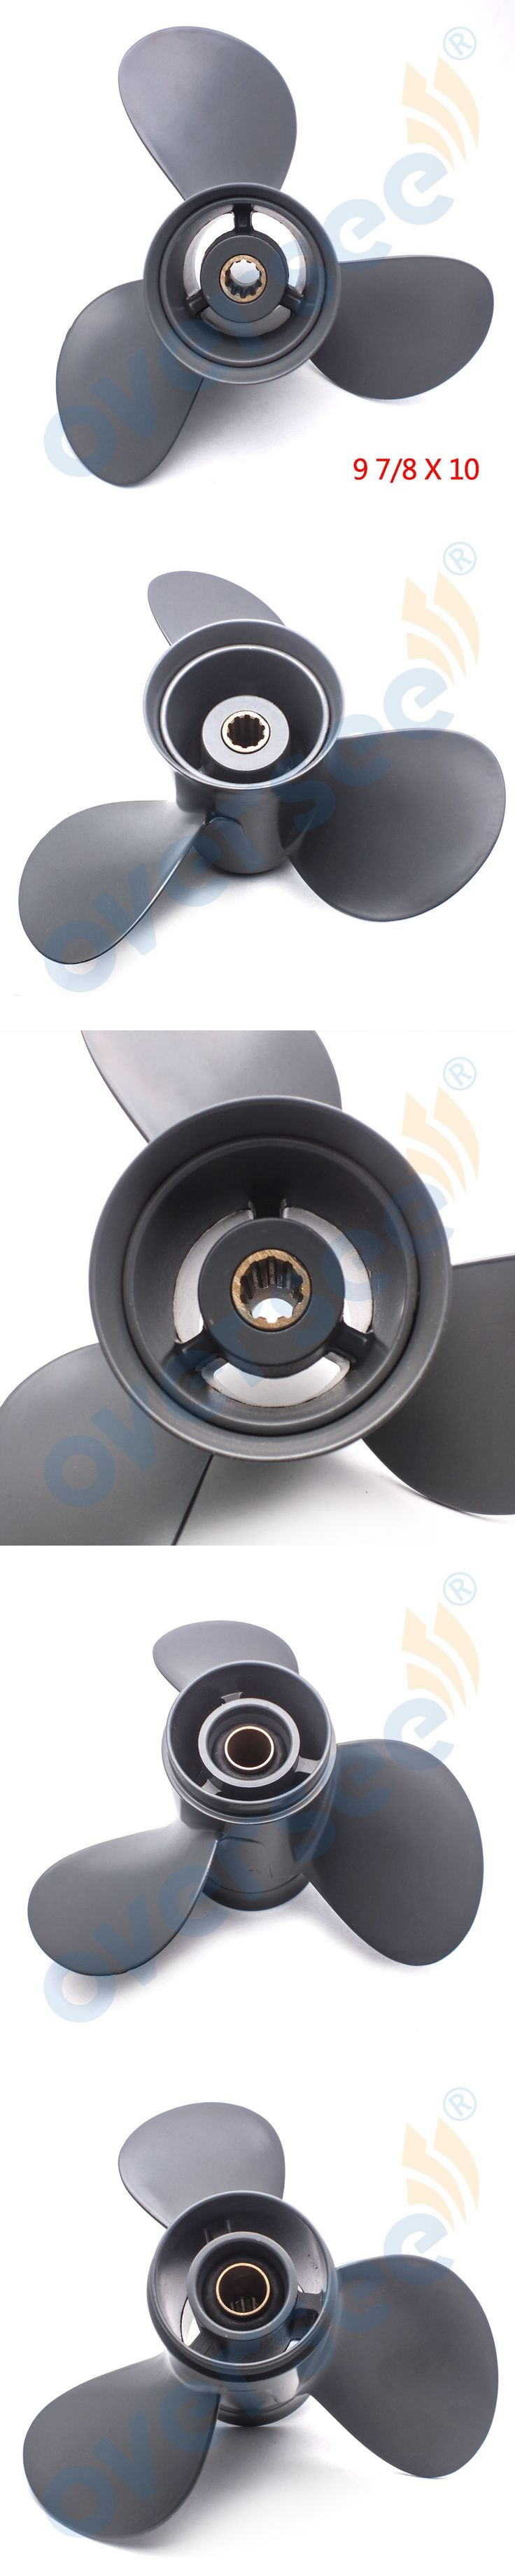 Aluminum Outboard Propeller 9 7/8x10 for HONDA OUTBOARD ENGINE MOTOR 25-30HP 58130-ZV7-010AH